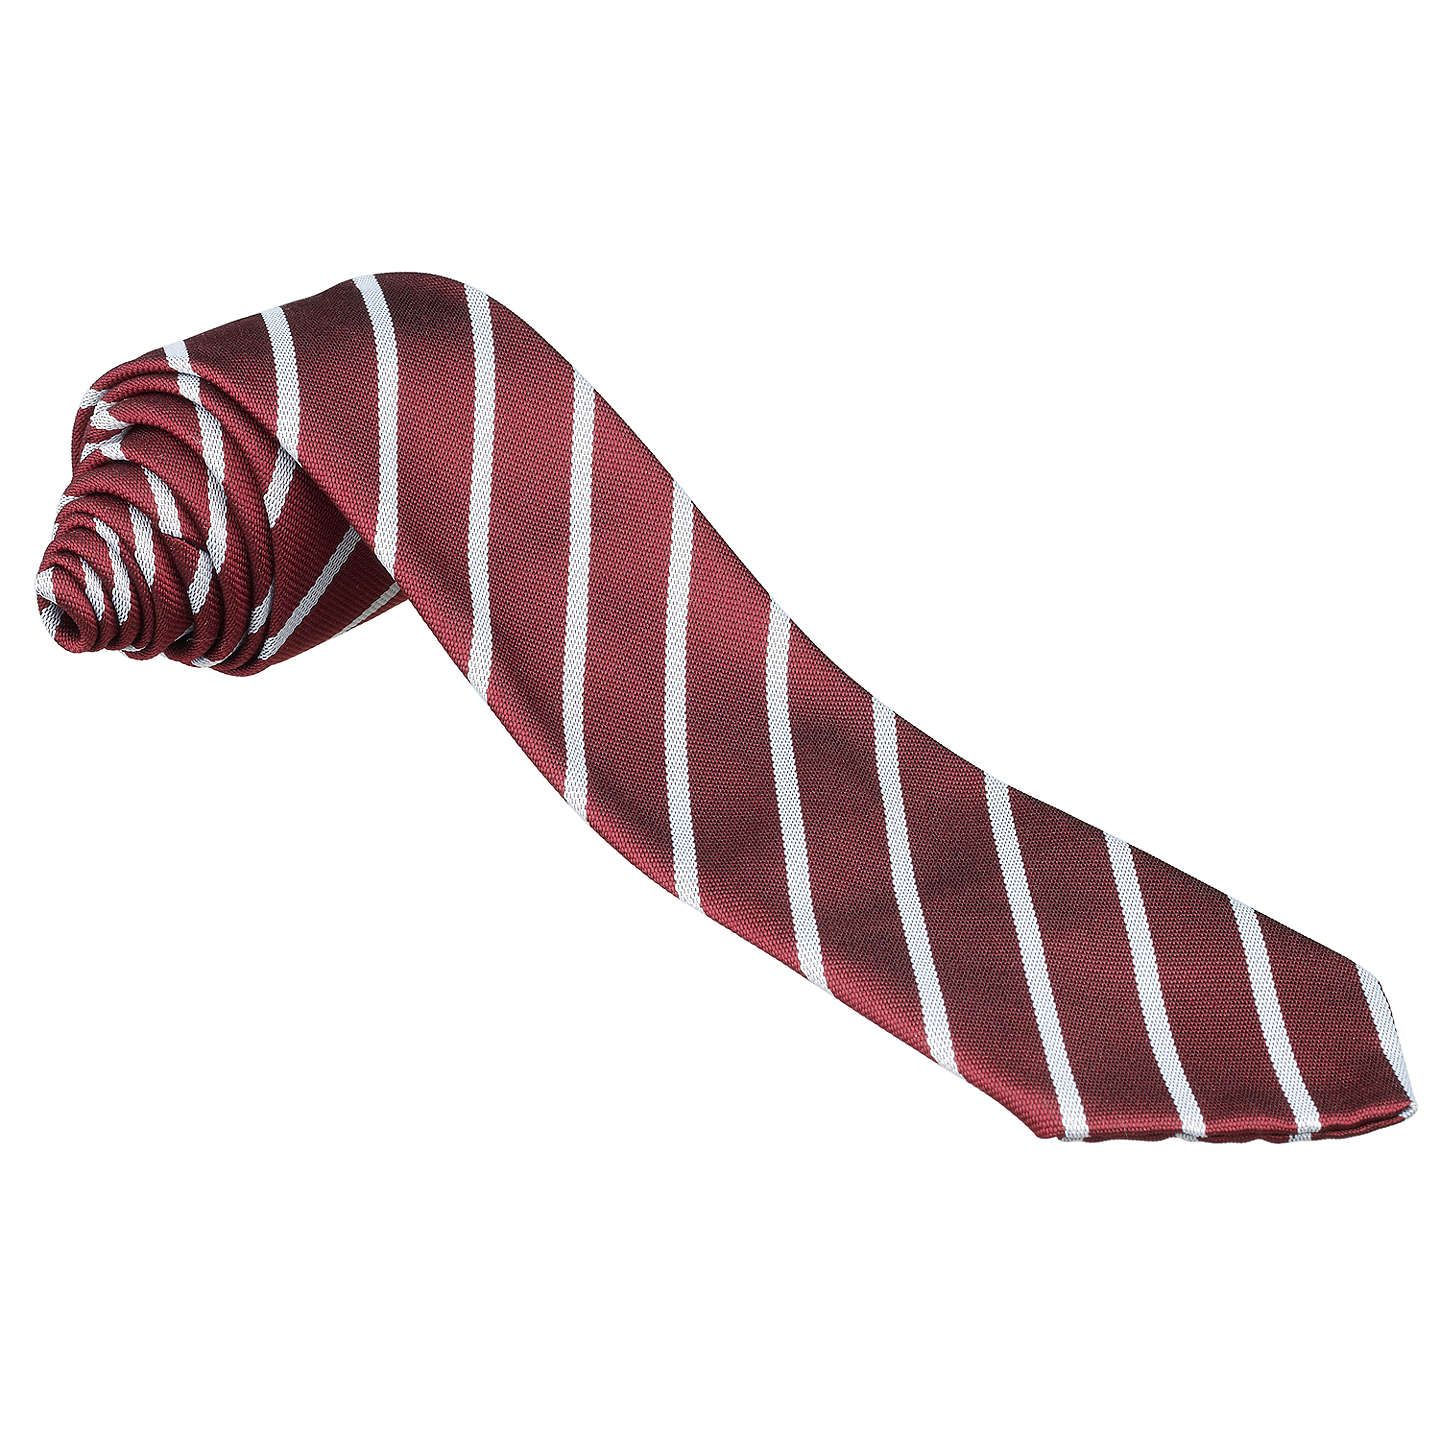 "BuyArchbishop Beck Catholic Sports College Unisex Tie, Maroon/Silver Stripe, L45"" Online at johnlewis.com"